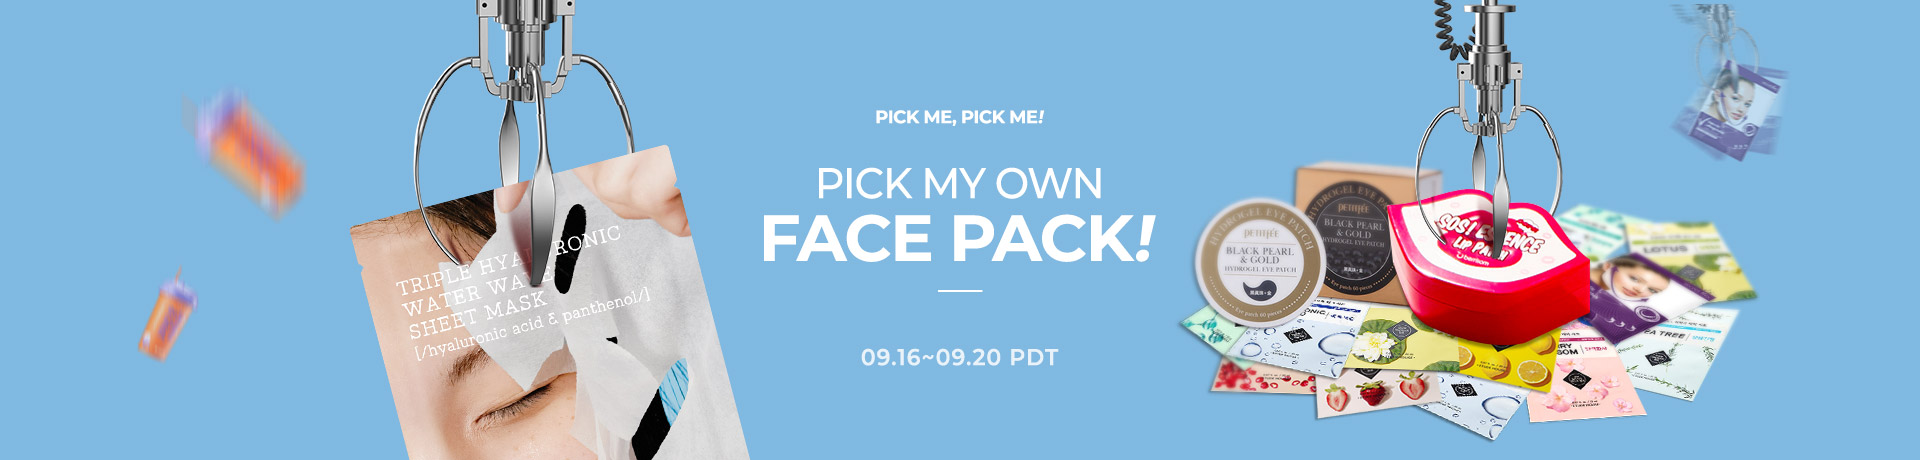 Pick Me, Pick Me! Pick my own face pack!